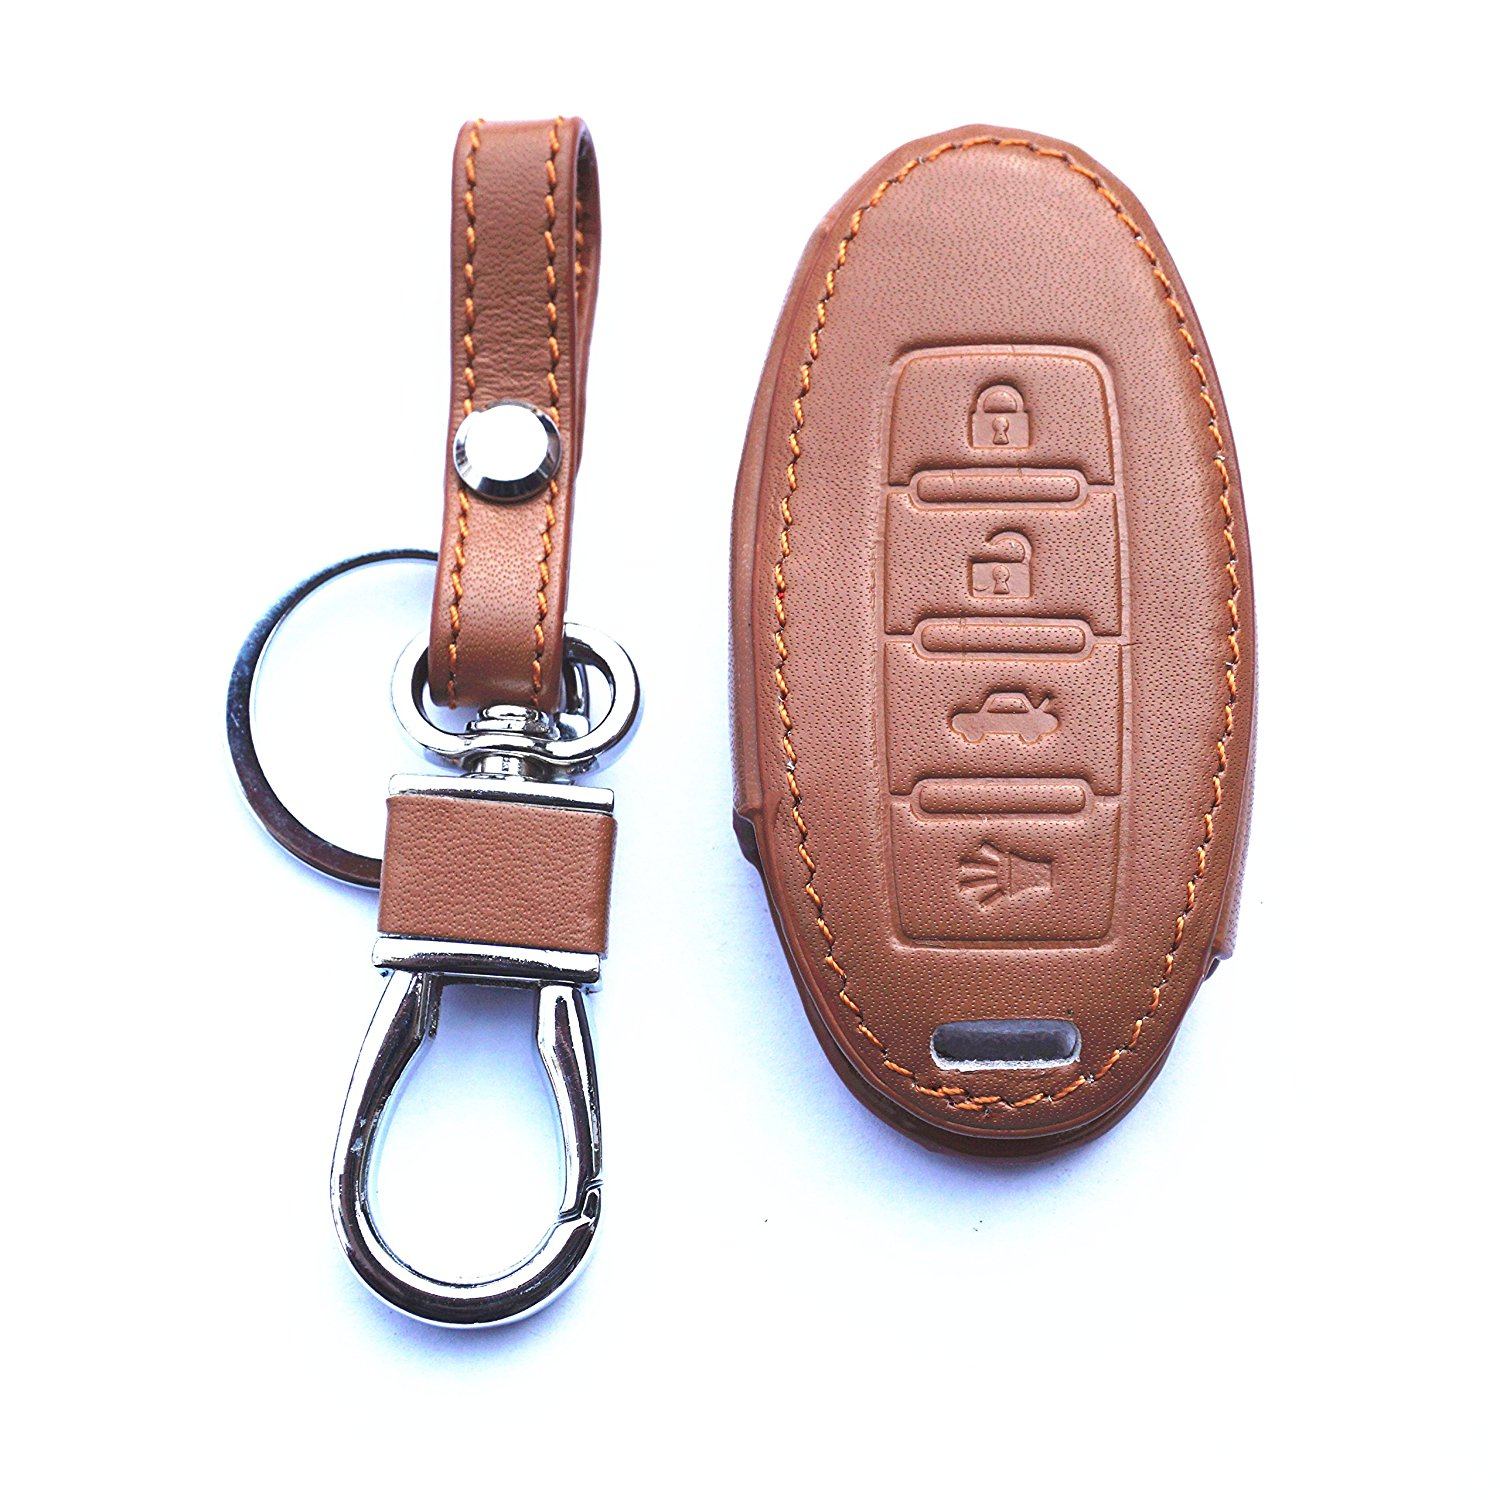 WFMJ Leather 4 Buttons Key Chain Cover Case For Nissan Murano 350Z 370Z GT-R Sentra Armada Rogue Altima Maxima Versa Pathfinder